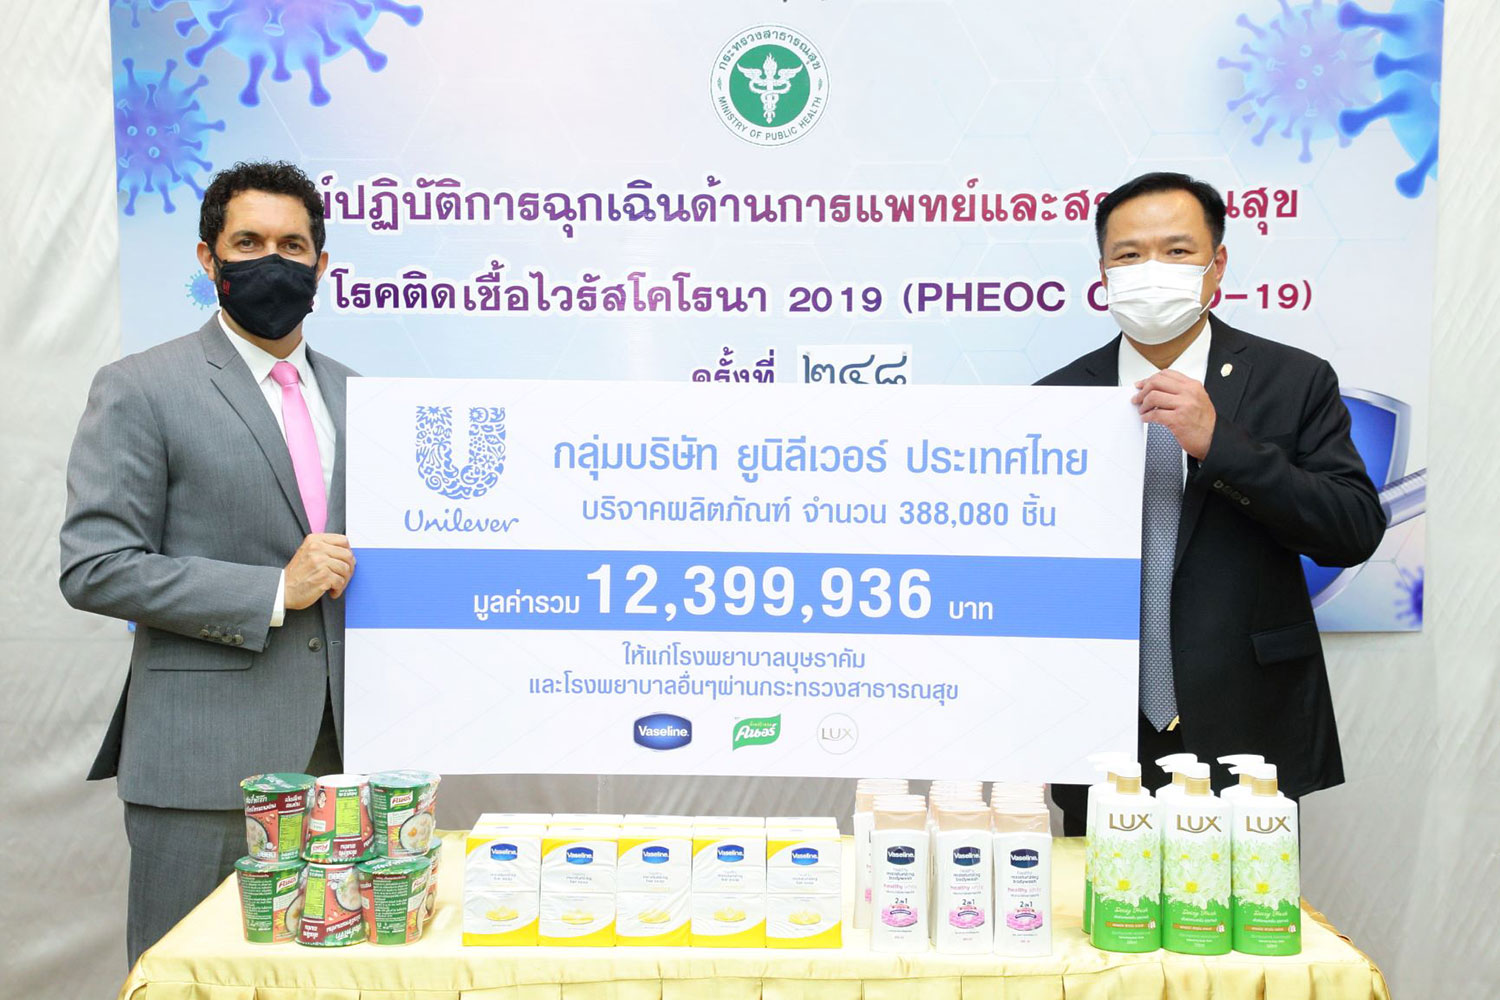 Unilever Thailand made donation worth more than 12 million baht to field hospitals to fight Covid-19